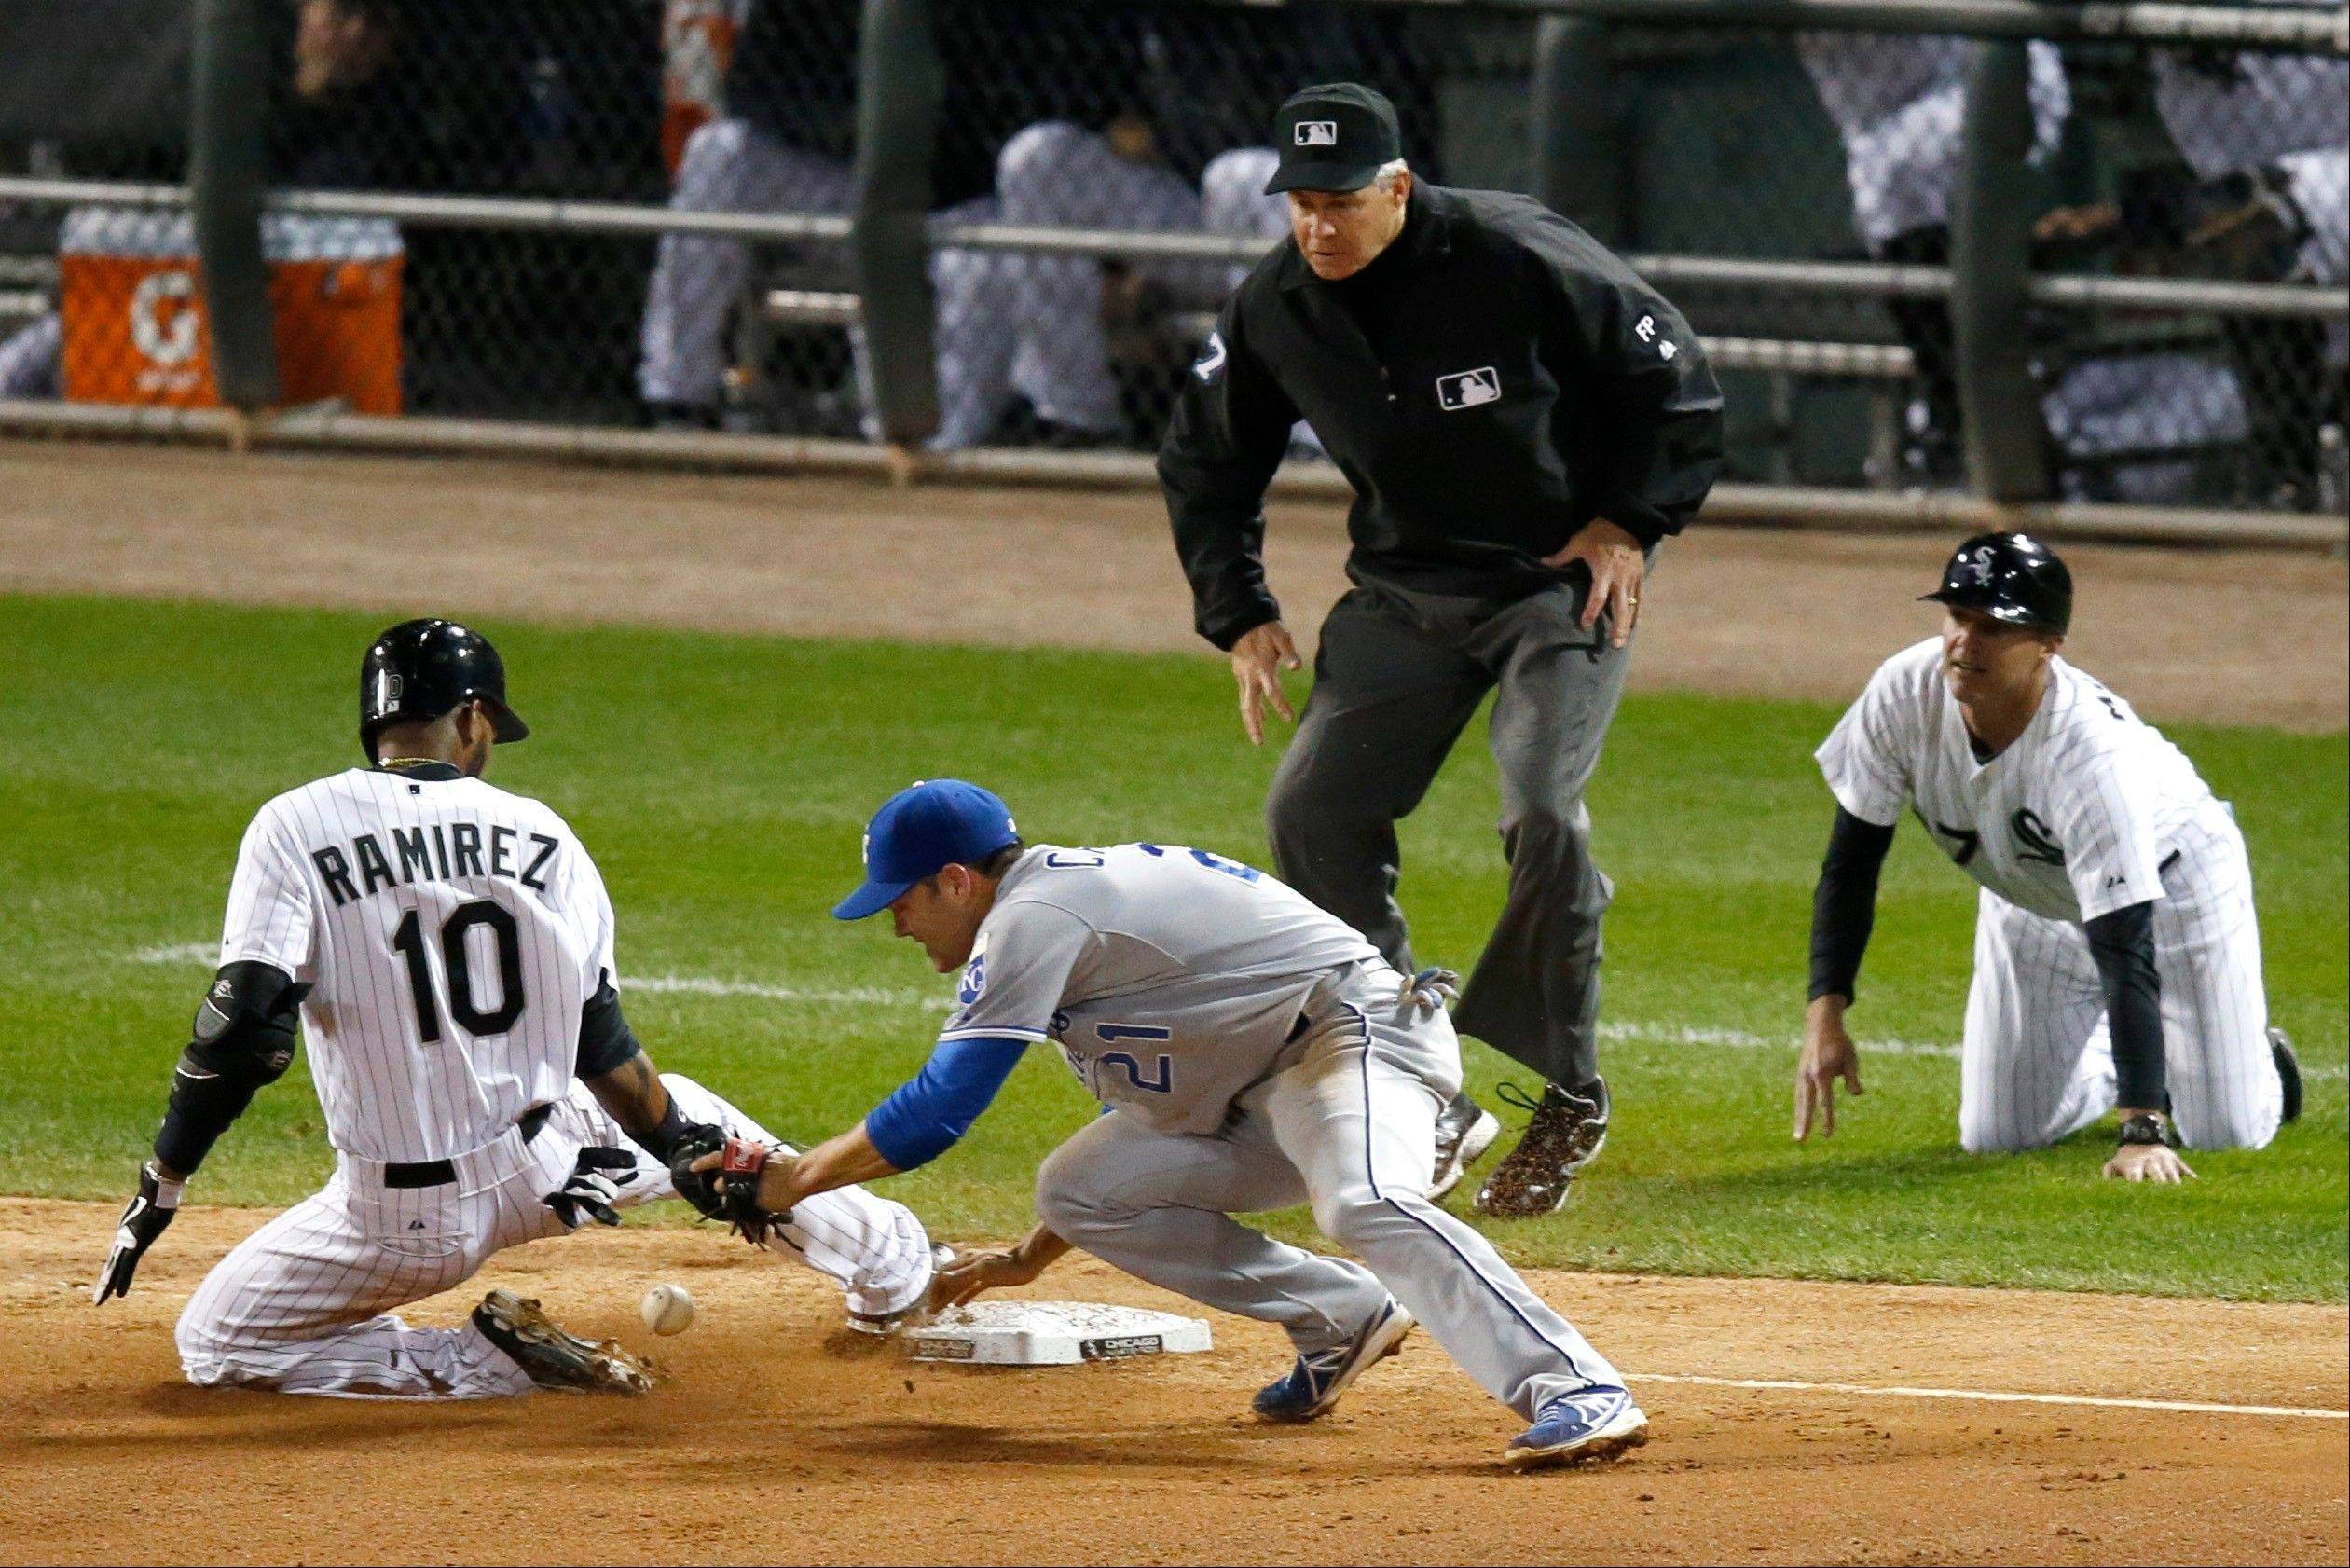 Alexei Ramirez slides safely into third past Royals third baseman Jamey Carroll after hitting a triple in the fourth inning Friday in Chicago. Watching on the play are umpire Gary Darling and Sox third base coach Joe McEwing.